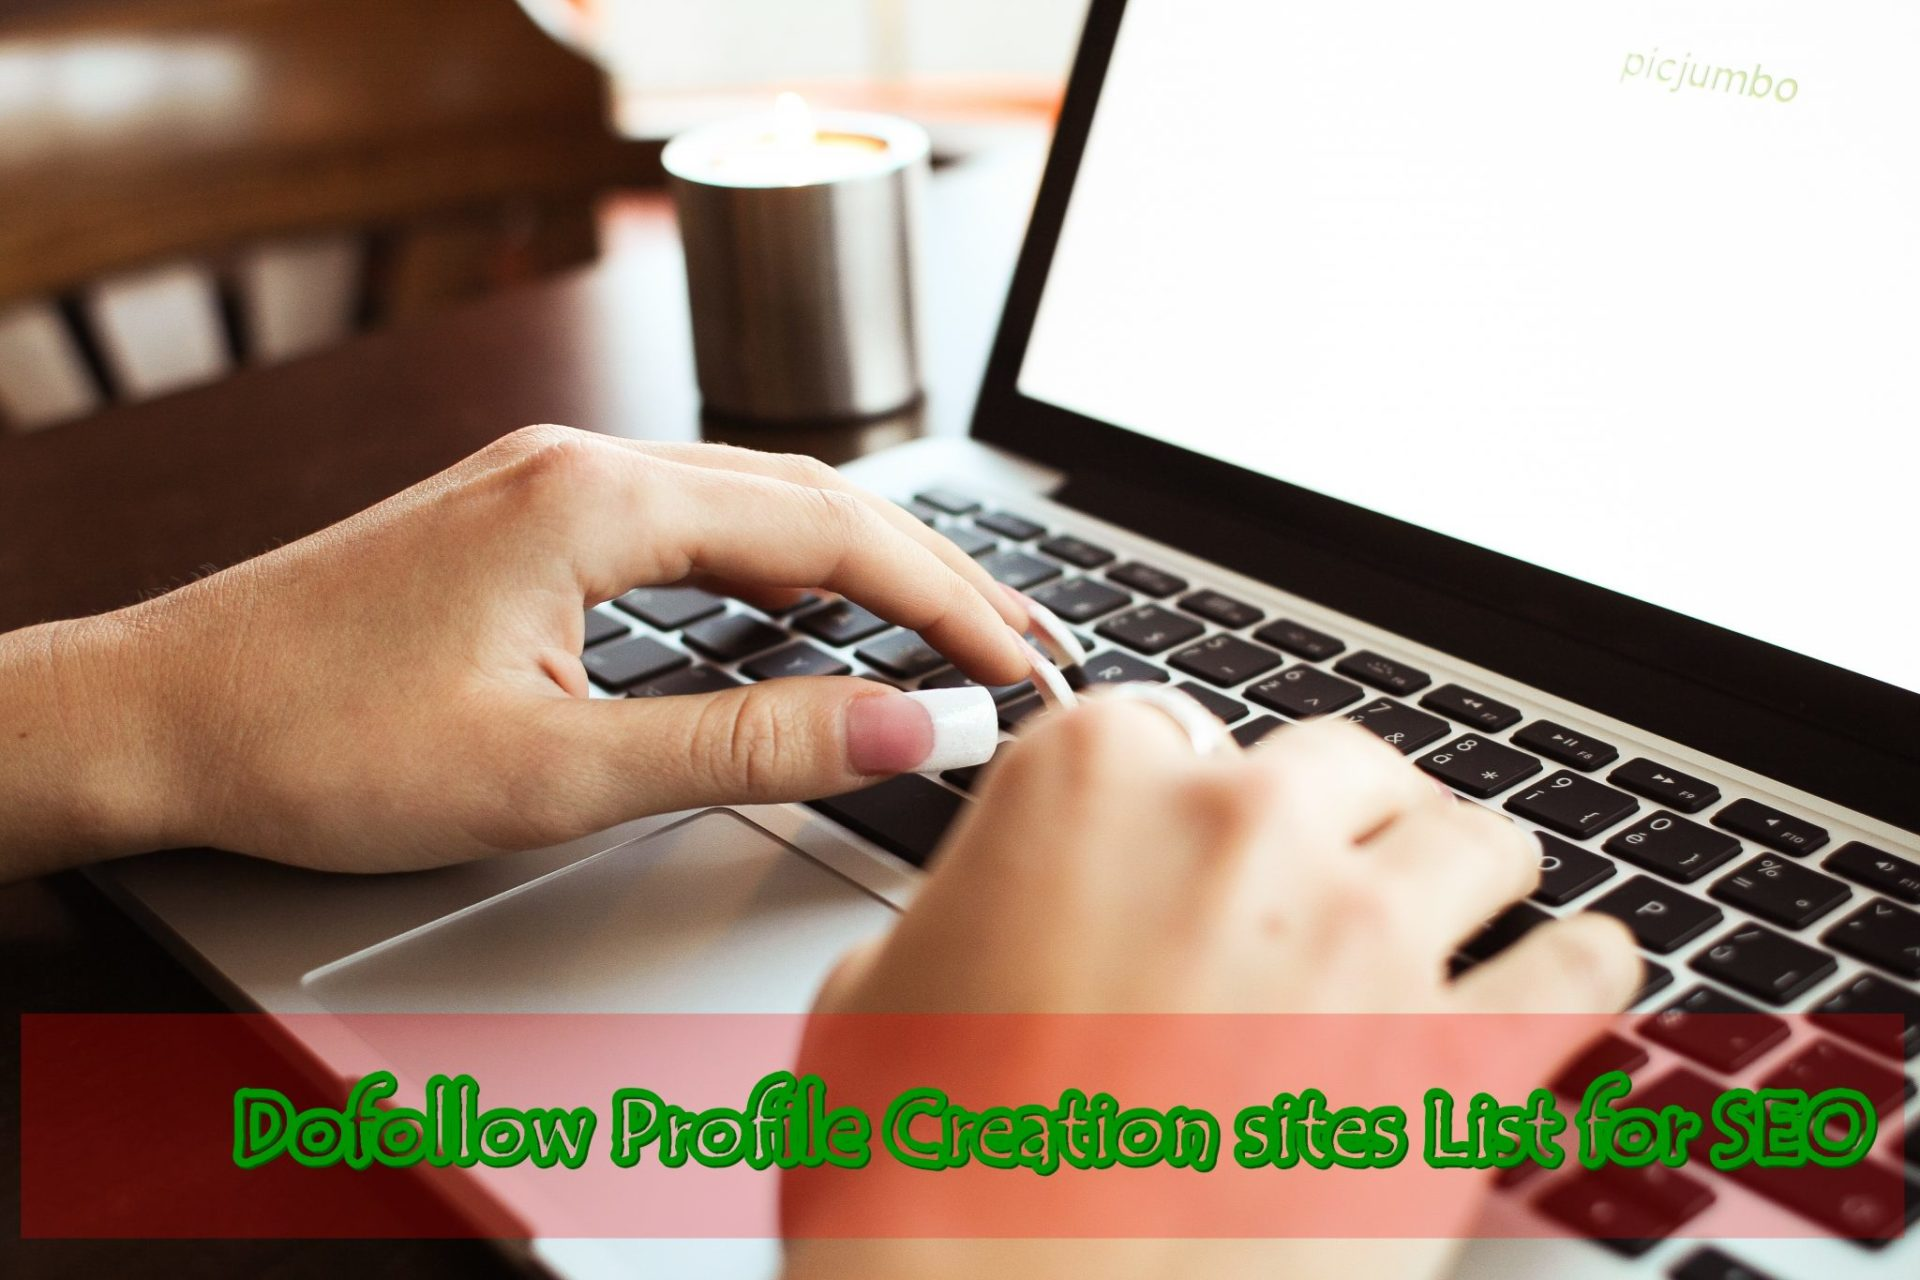 Domain Authority Profile Creation Sites List